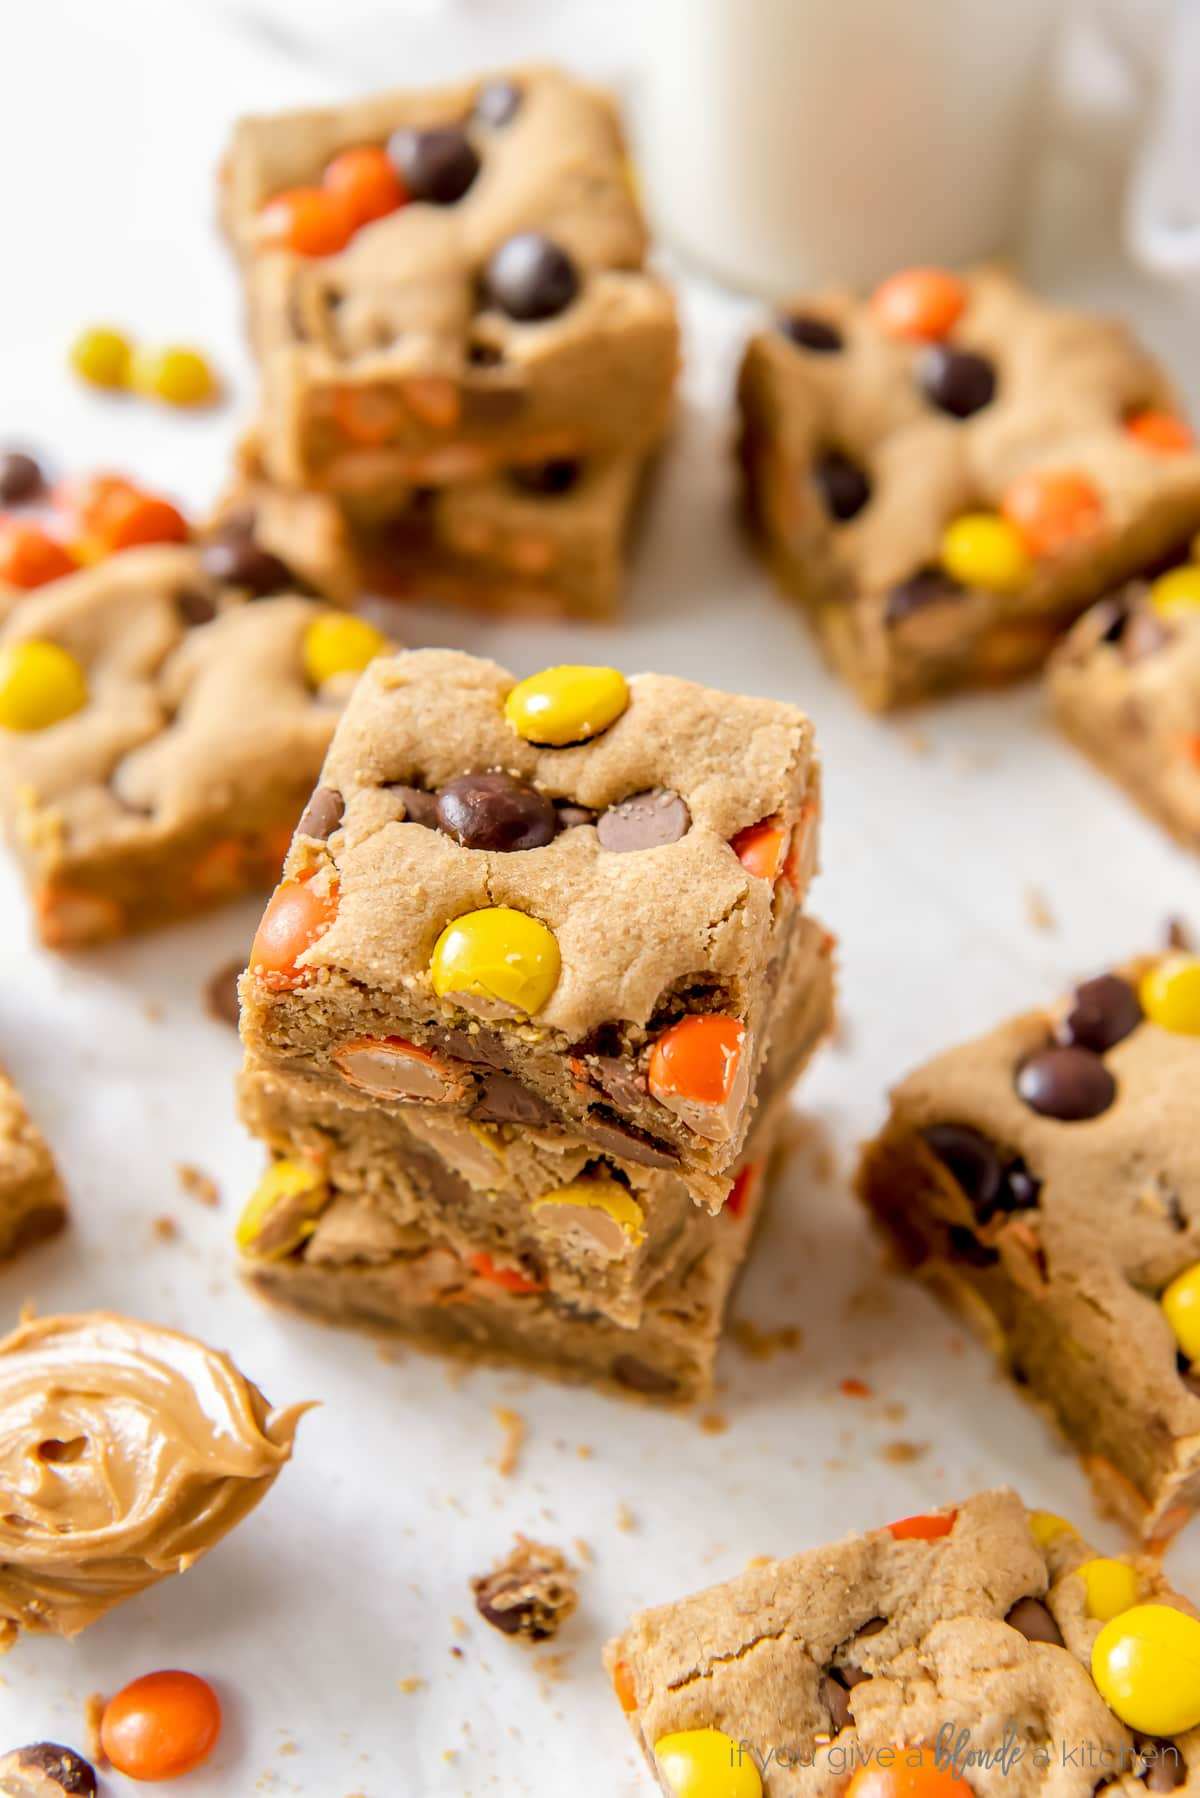 stack of reeses pieces peanut butter blondies on parchment paper next to more blondies